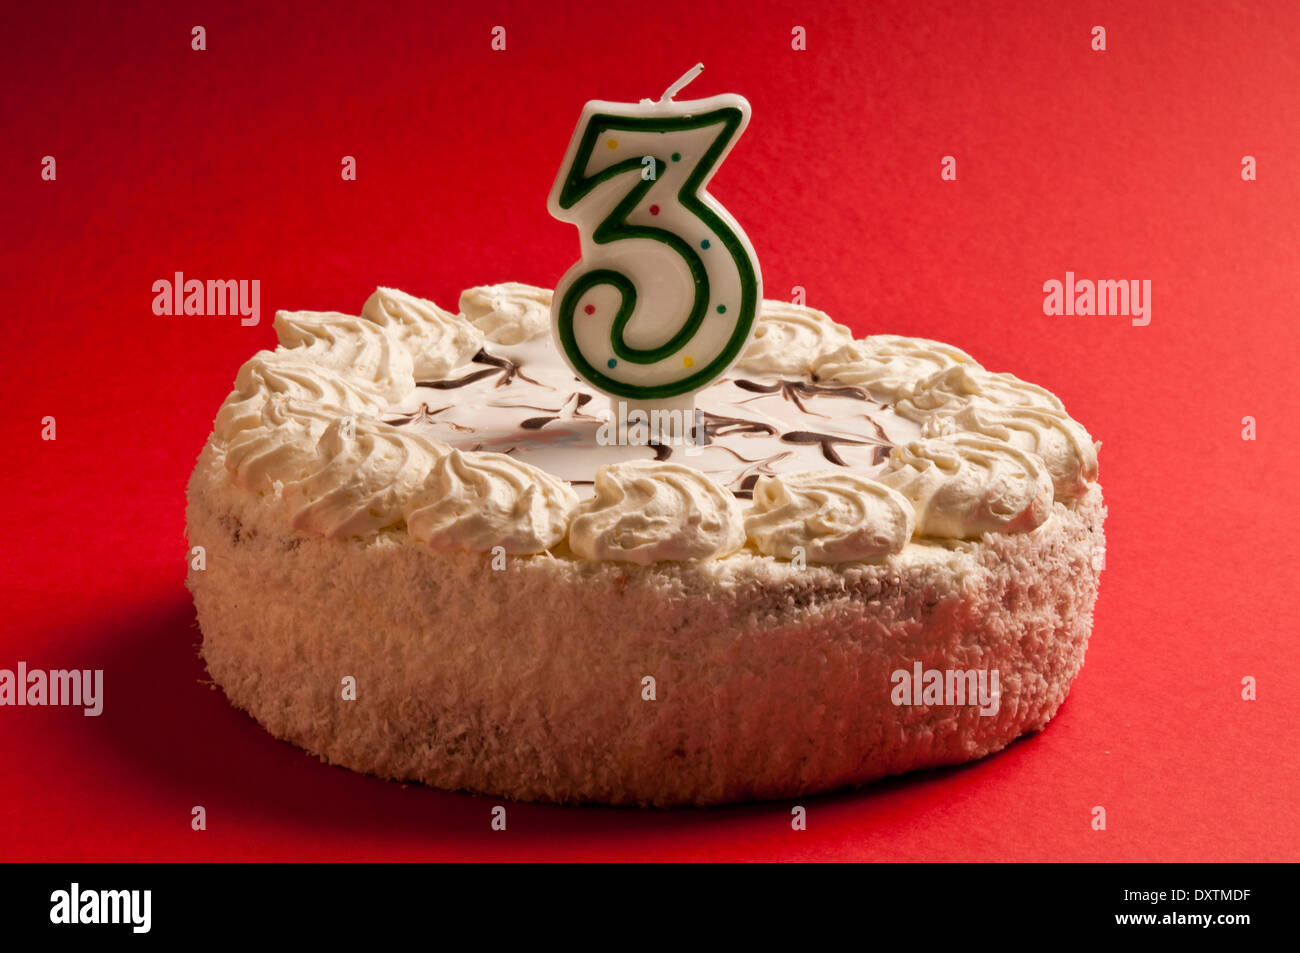 Birthday Cake With Candle Number